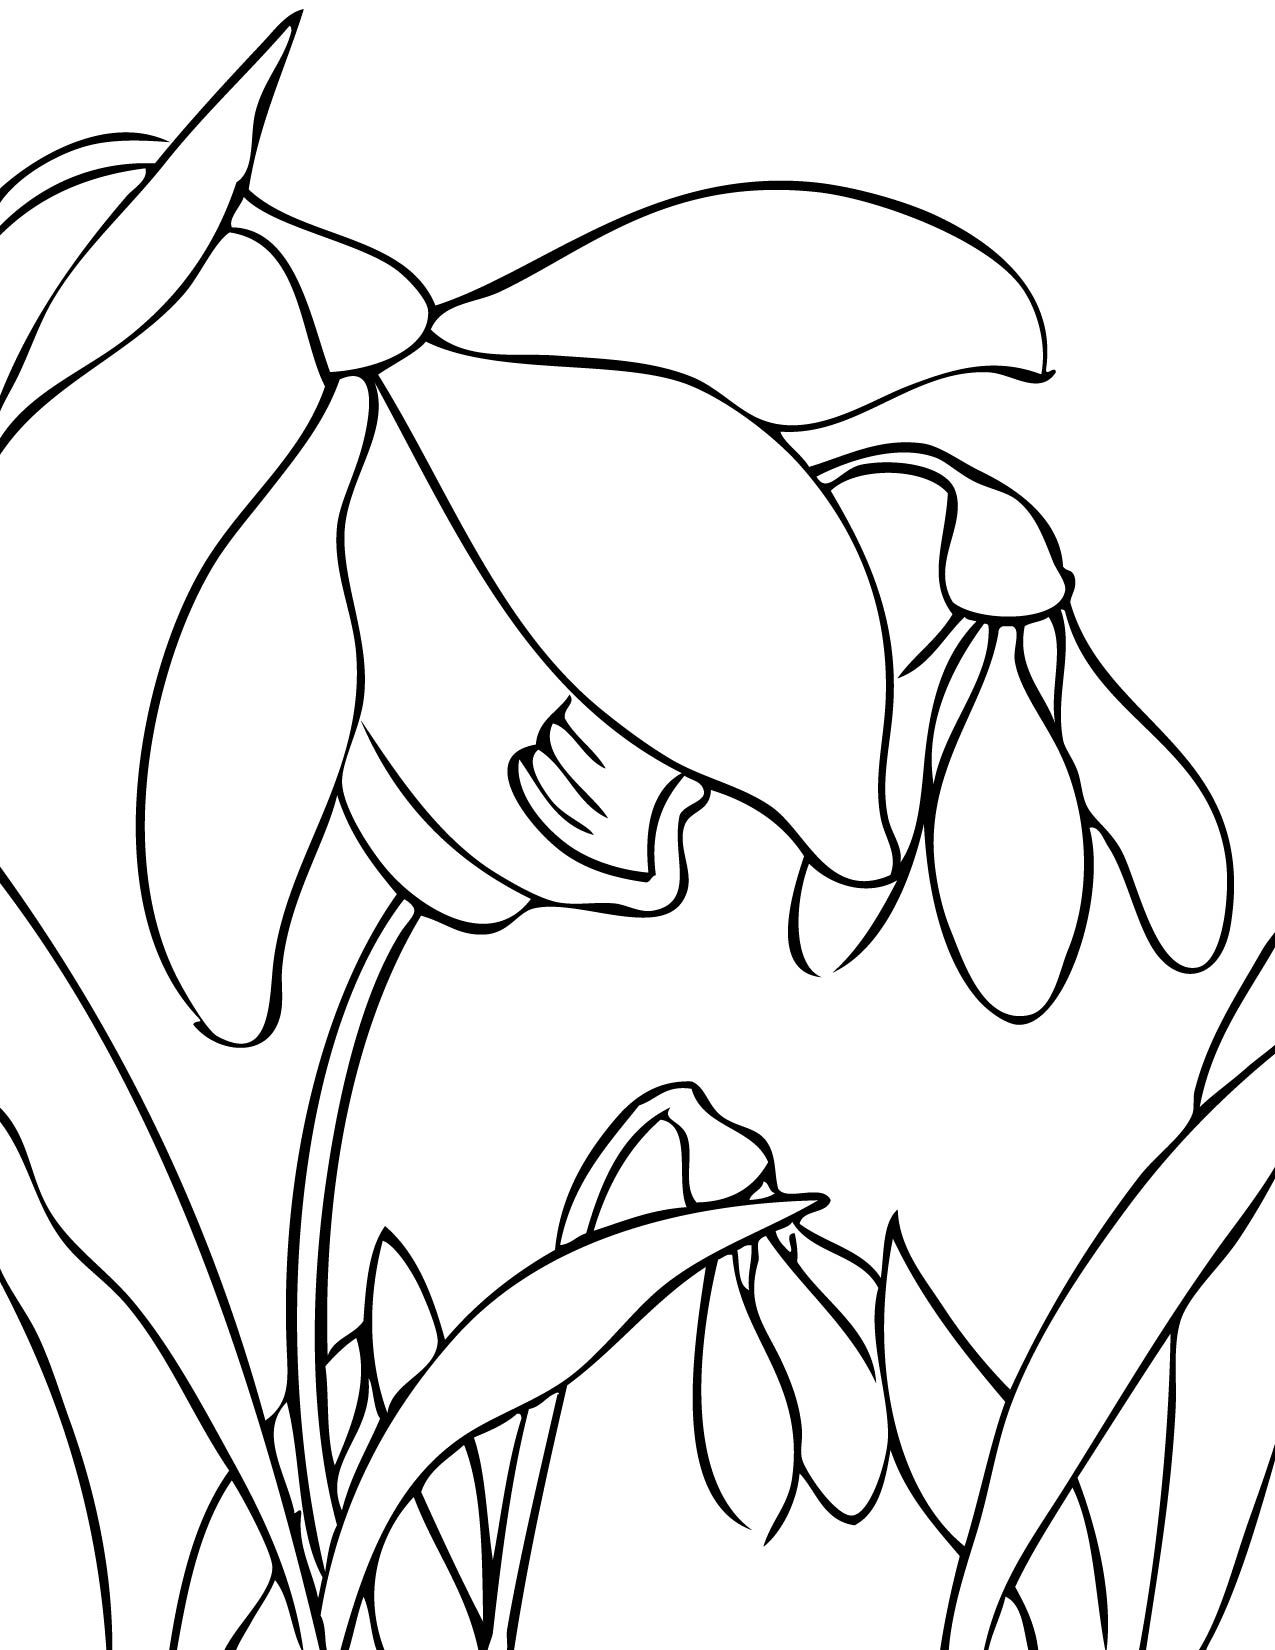 Snowdrop Coloring Page  Flower coloring pages, Spring flowers